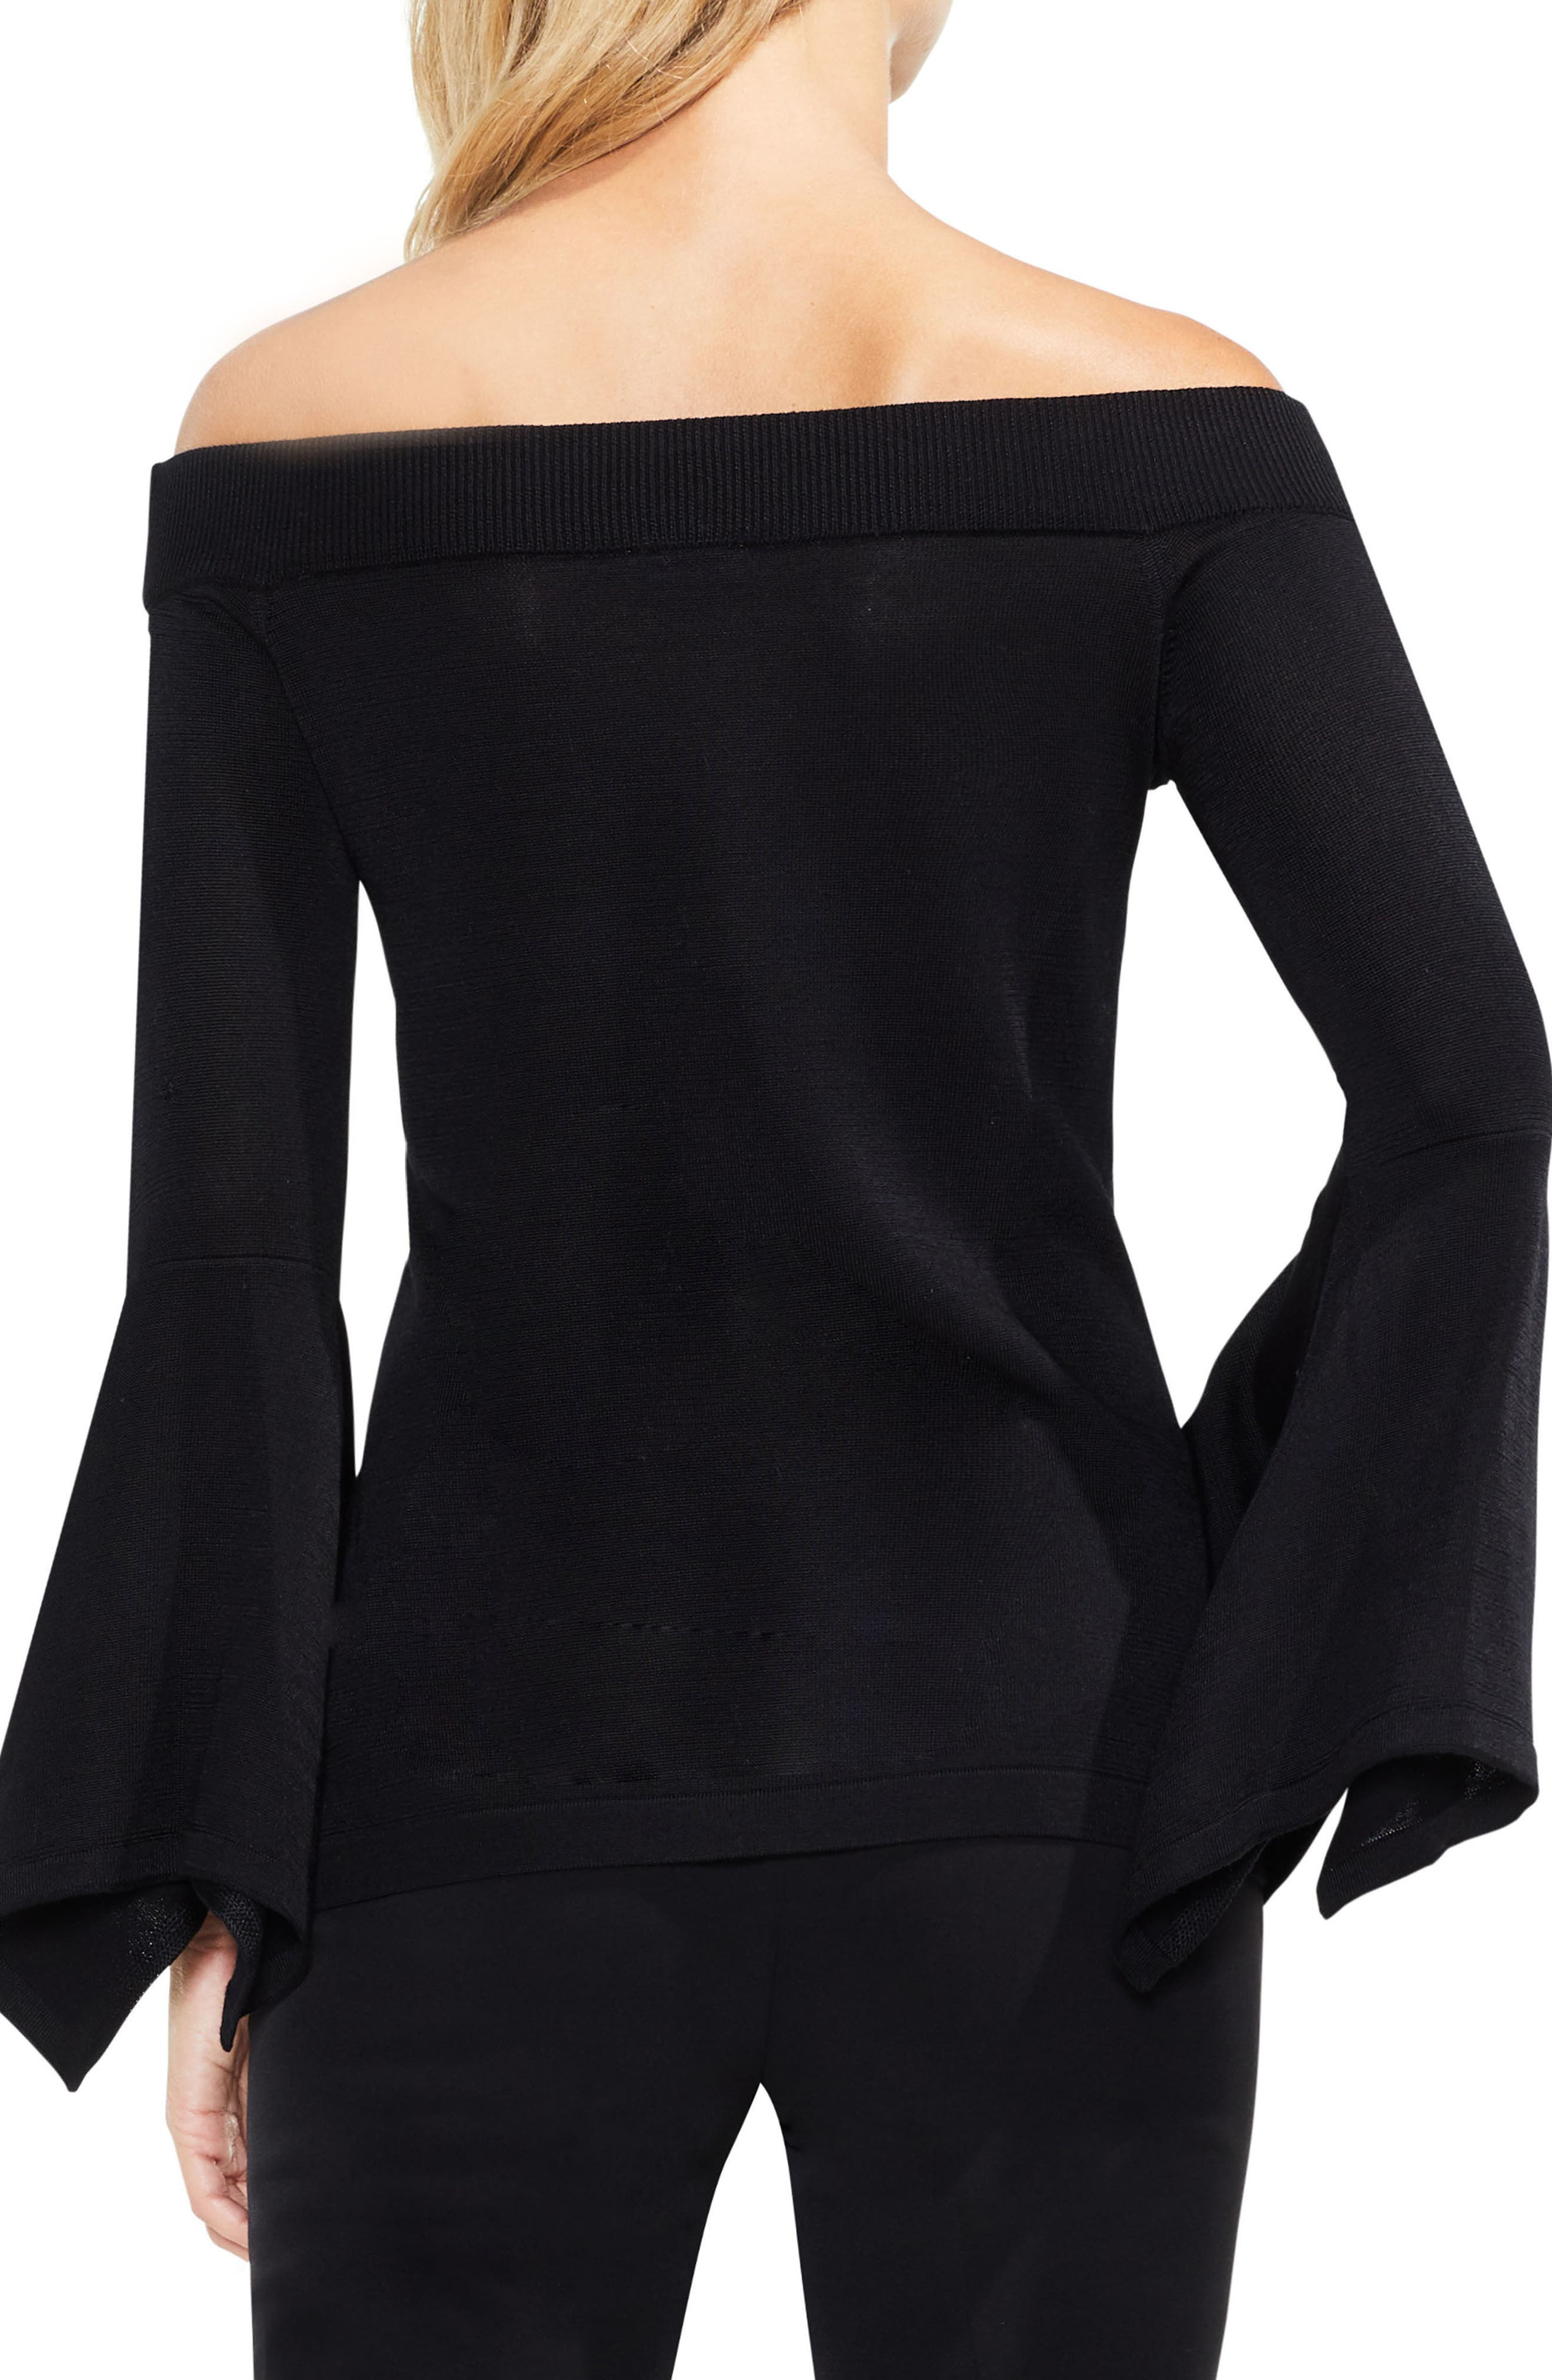 Alternate Image 2  - Vince Camuto Off the Shoulder Handkerchief Bell Sleeve Sweater